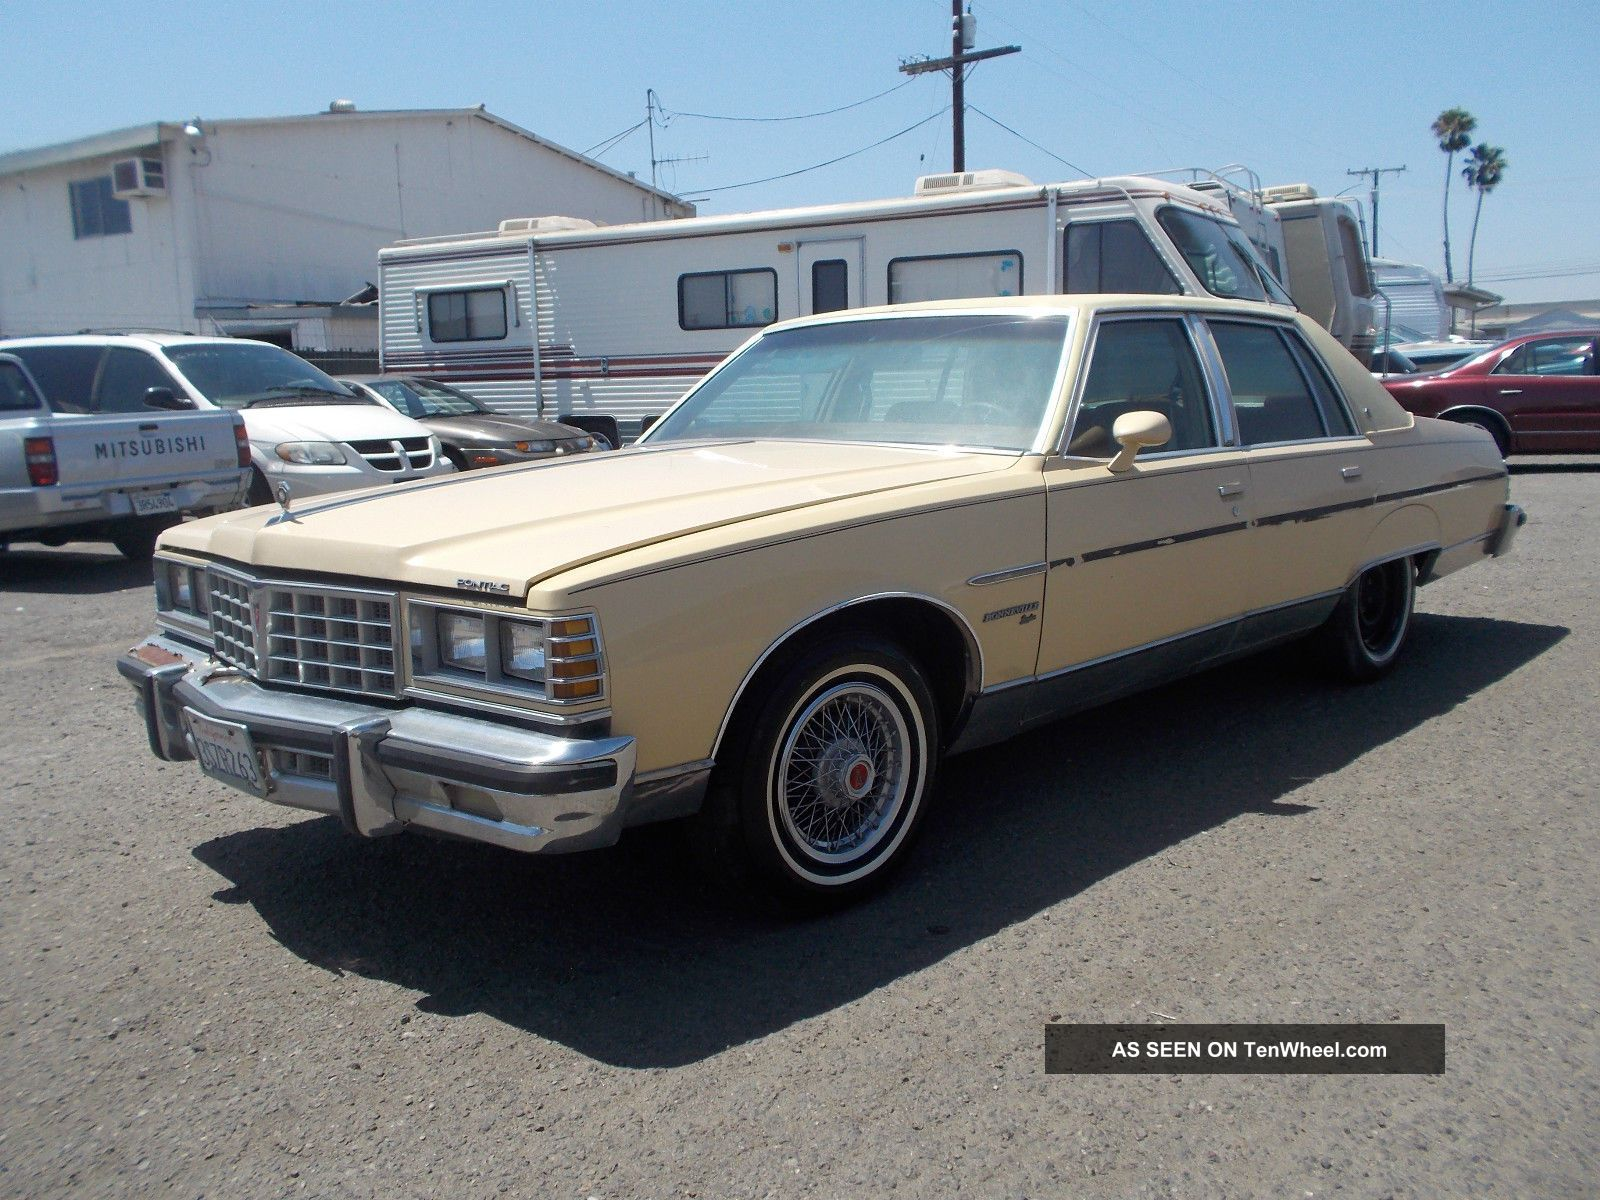 1977 Pontiac Bonneville, Bonneville photo